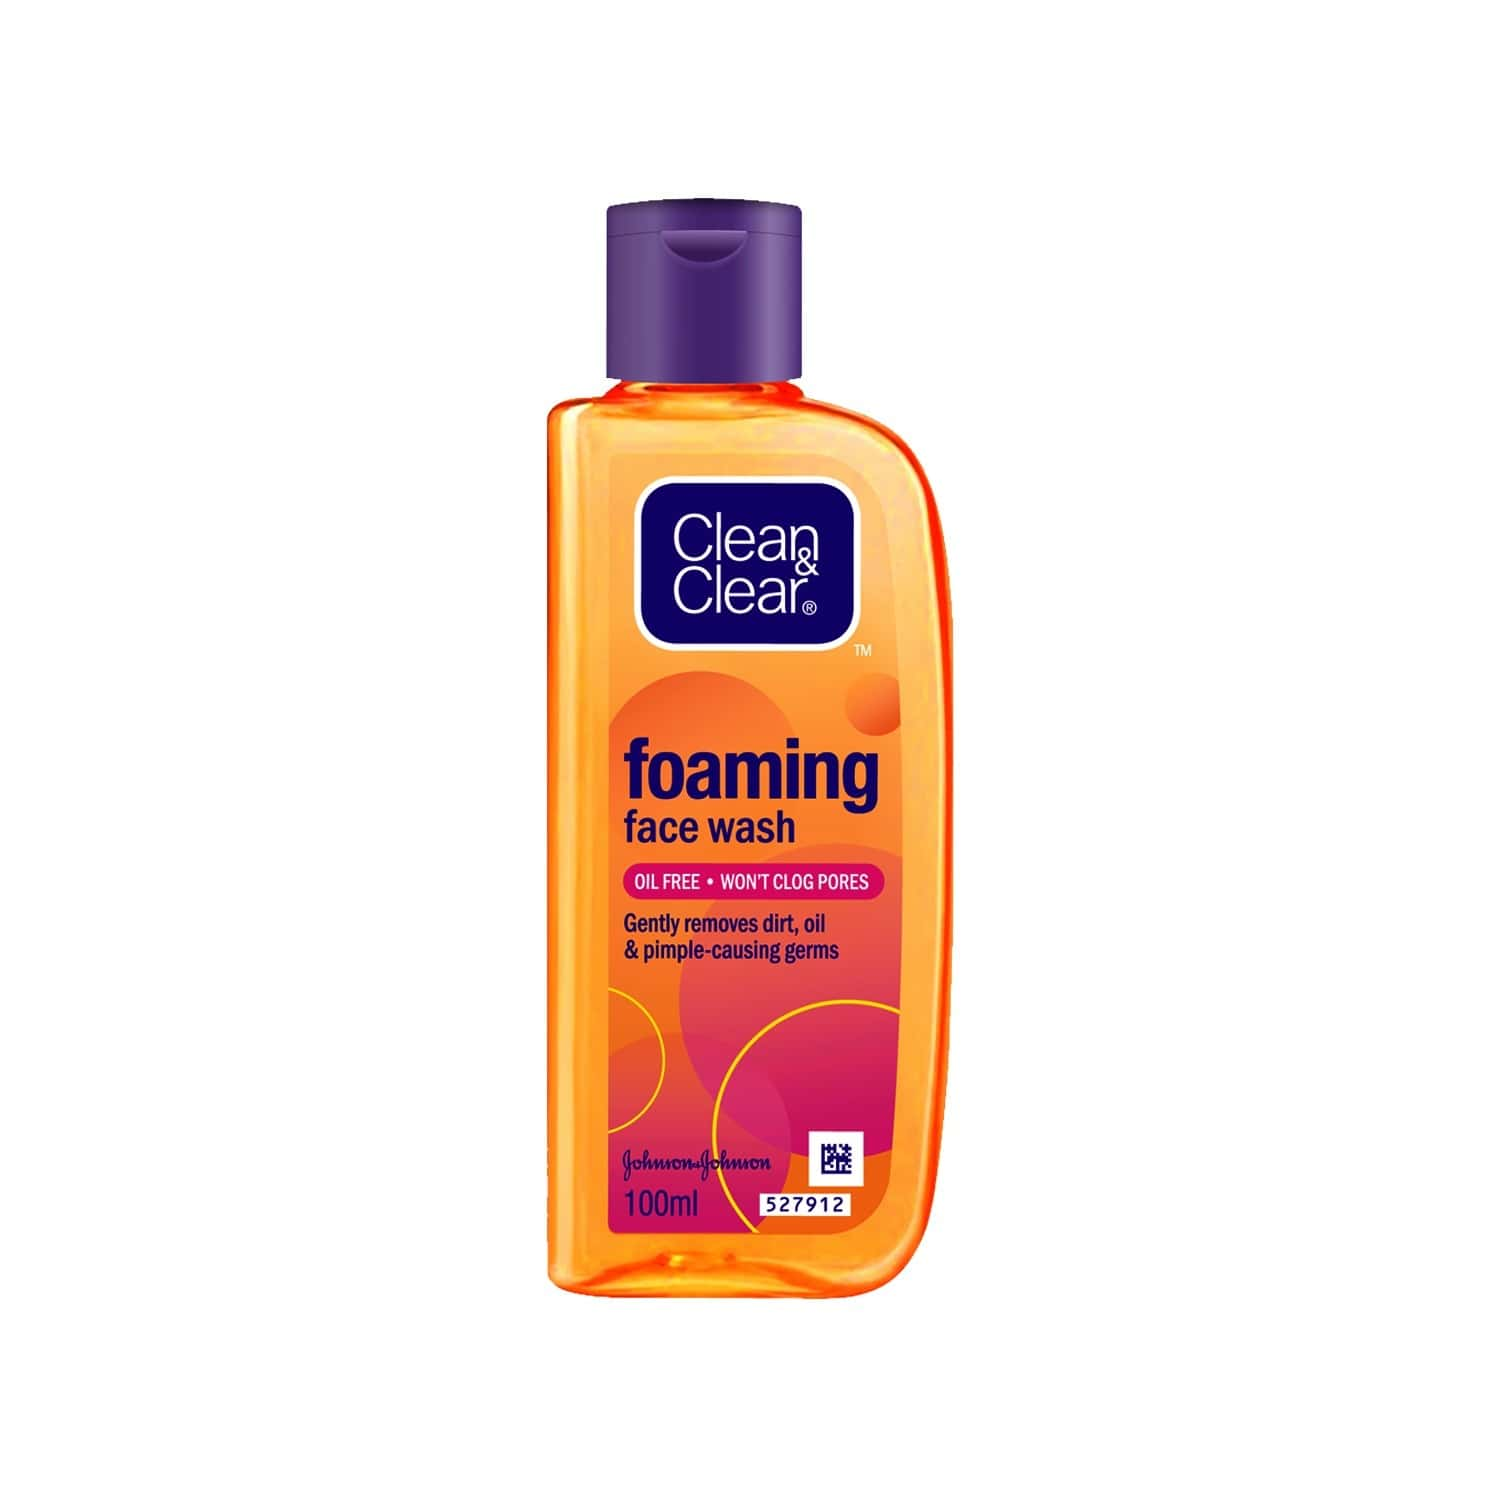 Clean & Clear Foaming Face Wash - 100ml